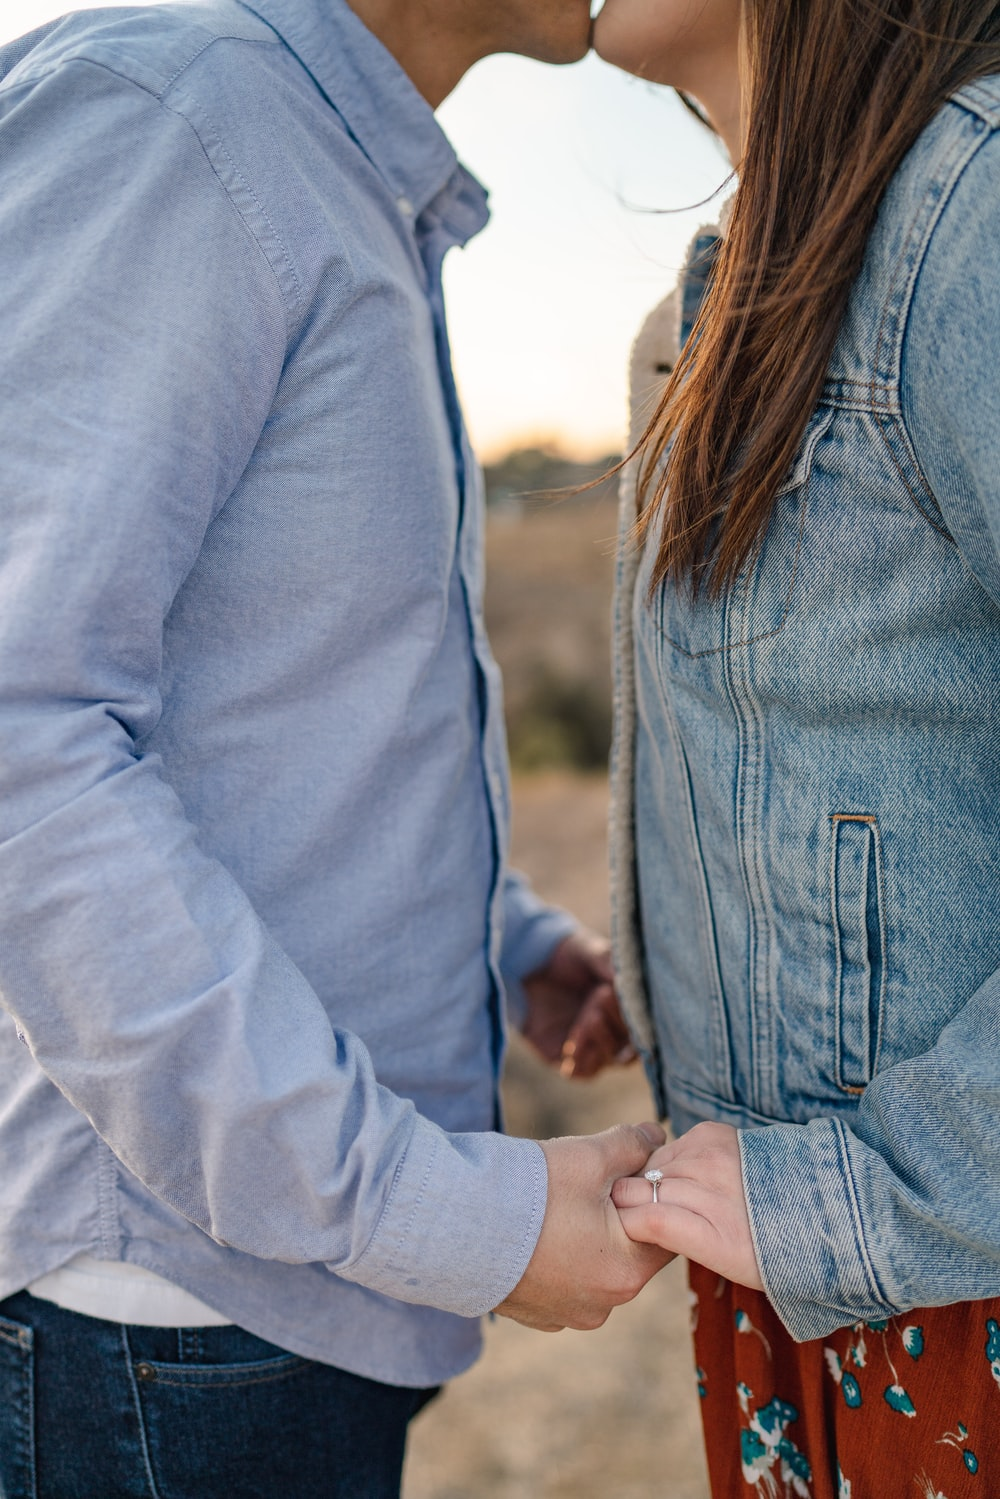 man and woman kissing while holding hands